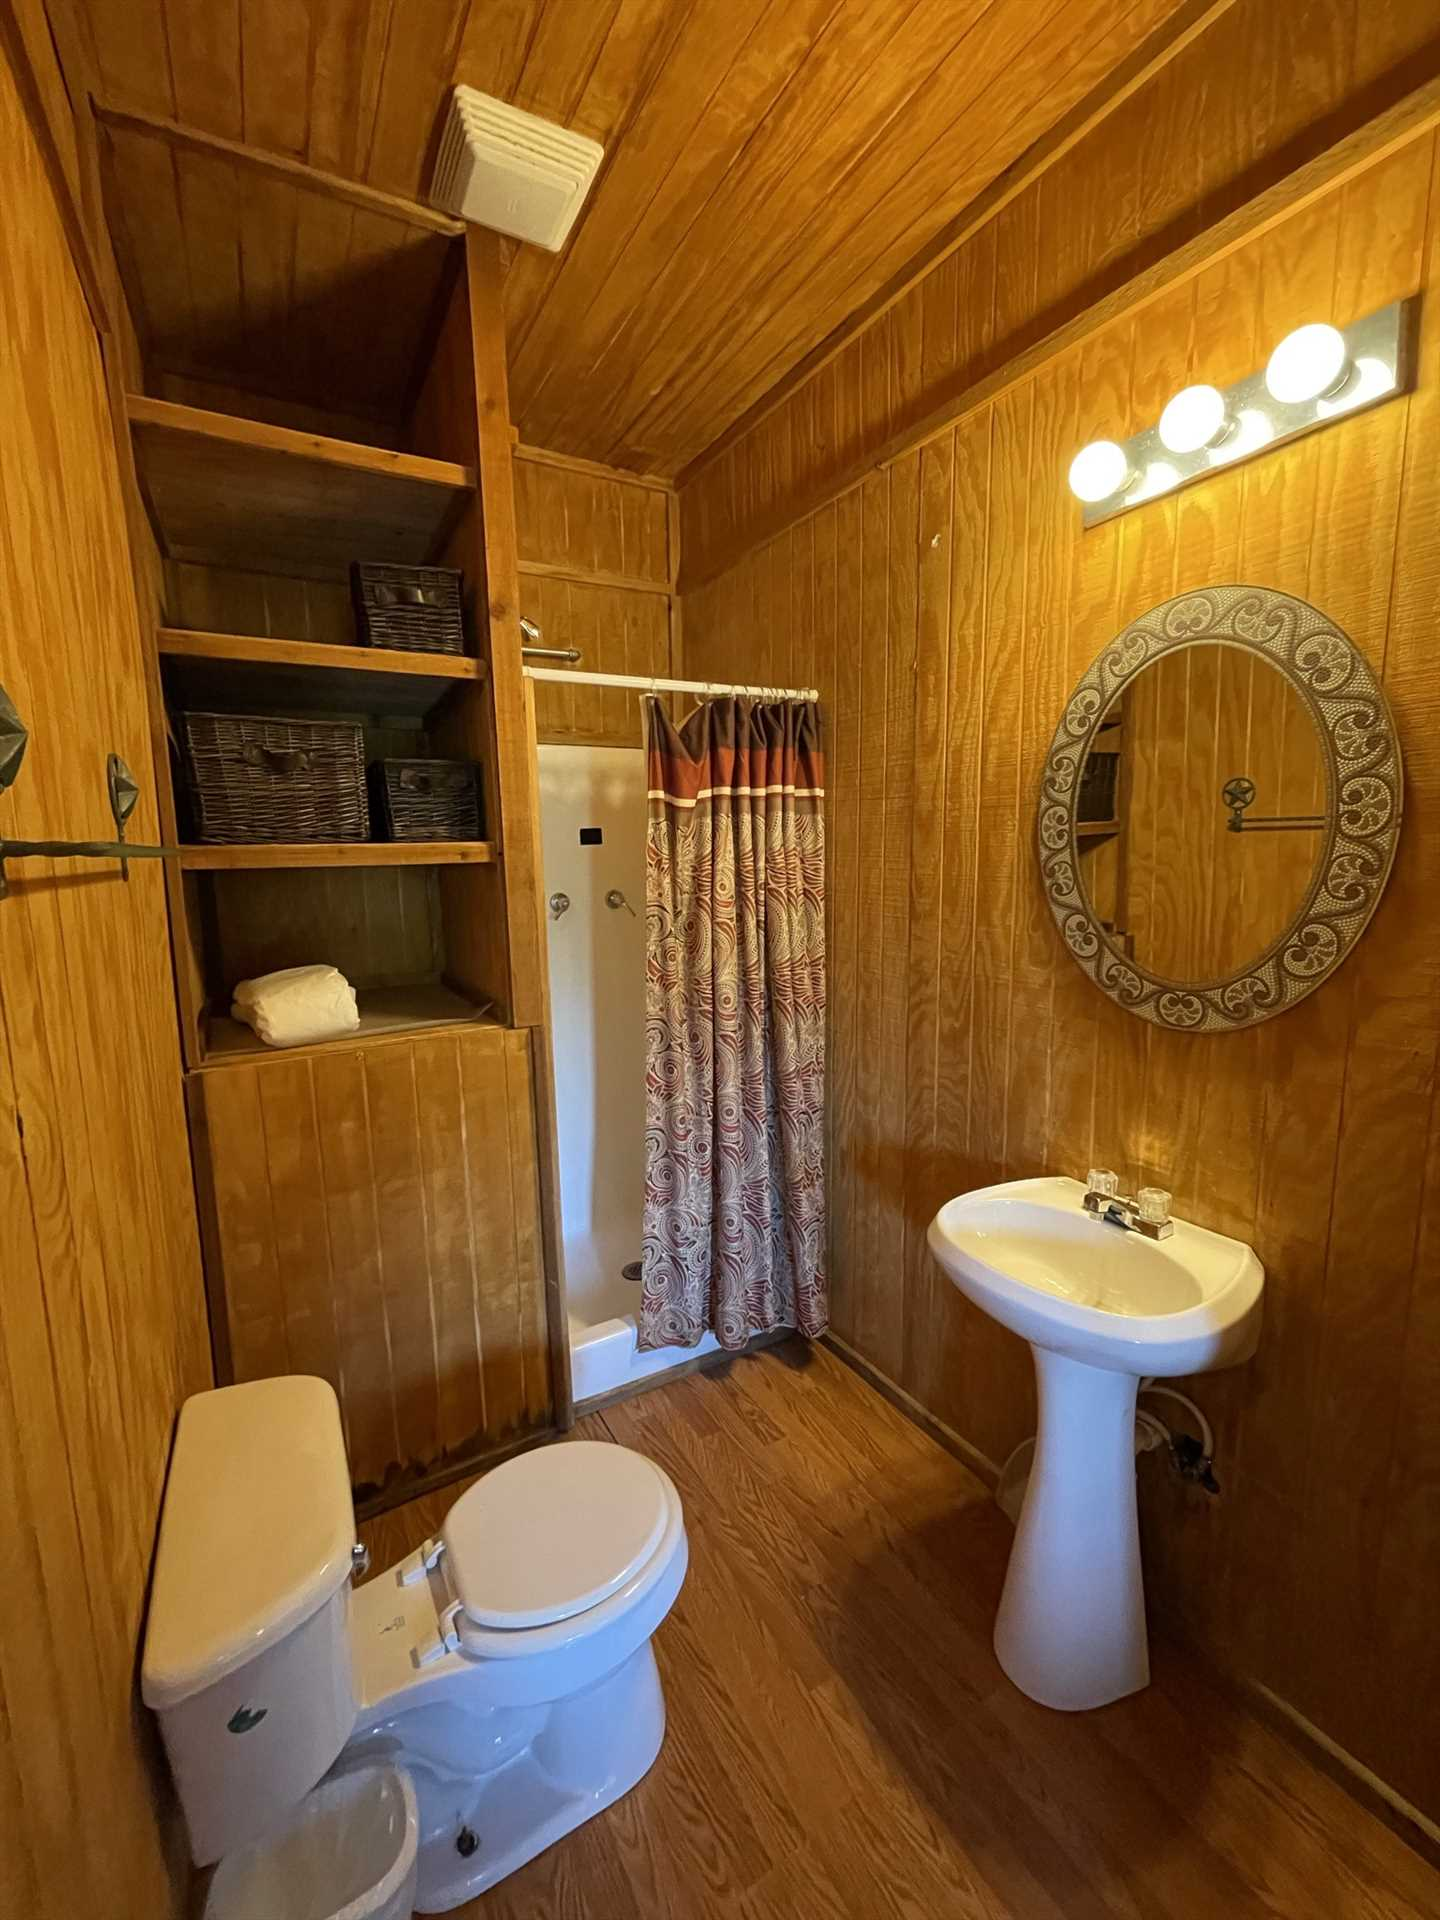 The full bath in the Gone Fishin' Cabin also features a clean shower stall and pedestal vanity.